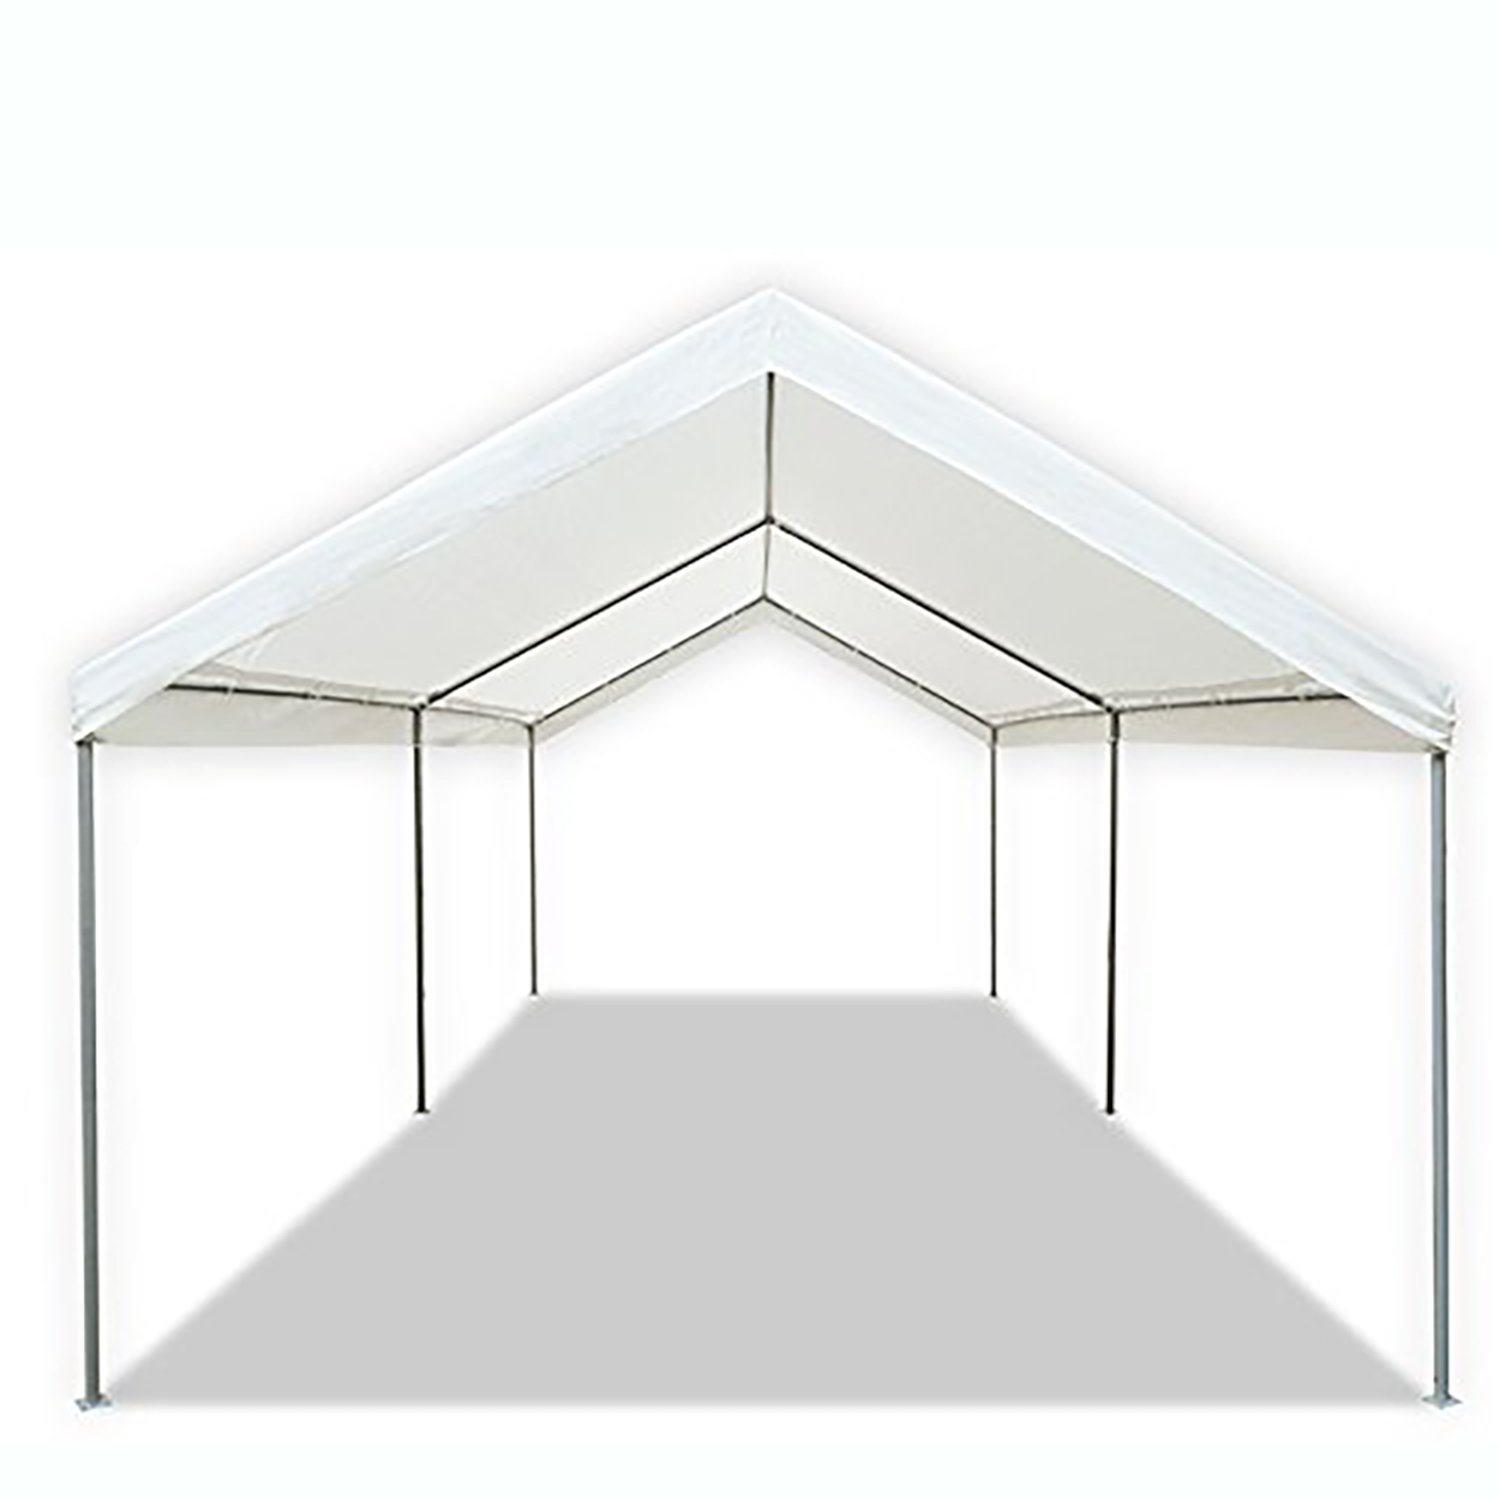 Carport Canopy Garage Tent Cover Steel Frame Portable ...